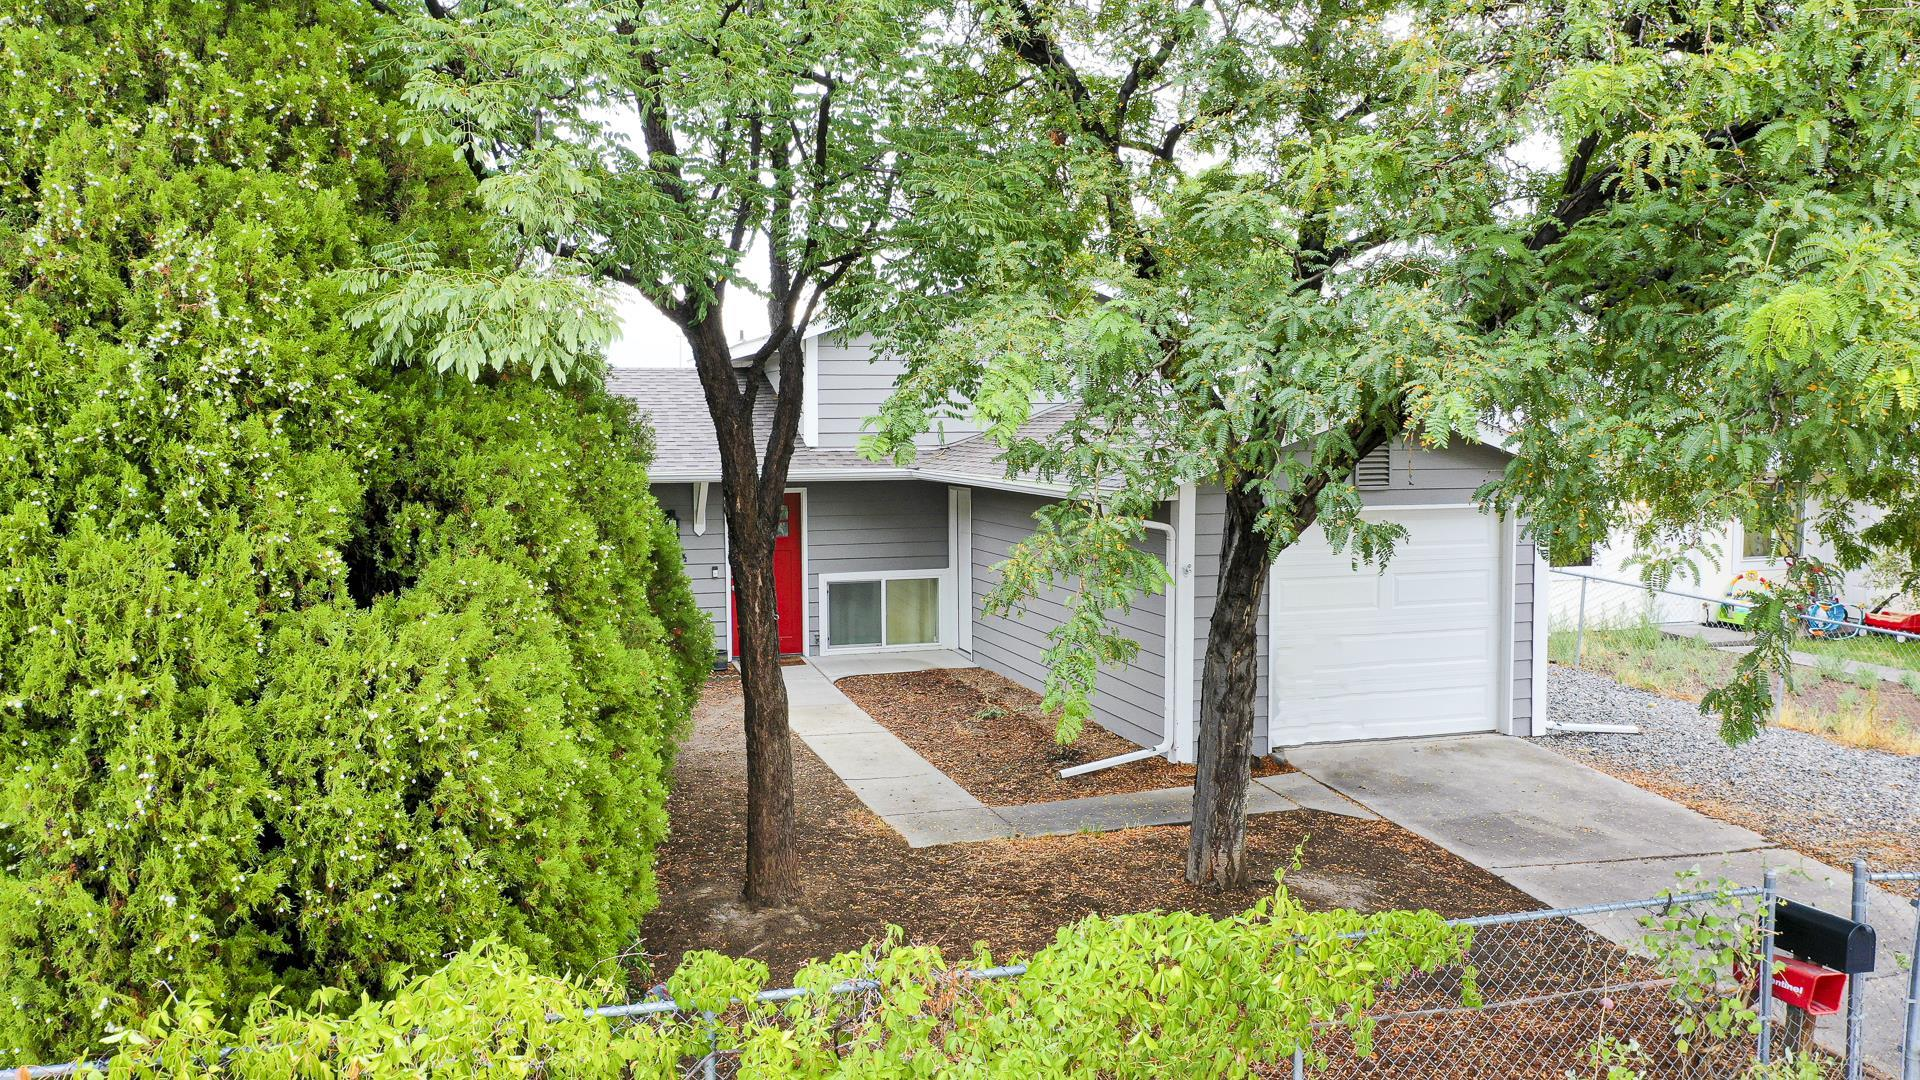 Nicely updated top to bottom & move in ready! Wonderful tri-level home w/ 3 beds, 2 baths, 1 car garage, & nearly 1200 sq ft of living space. There are 2 living areas making for great entertaining space. Great finishes throughout. Outside you will find a screened patio & xeriscaped fenced yard. Come take a closer look!!